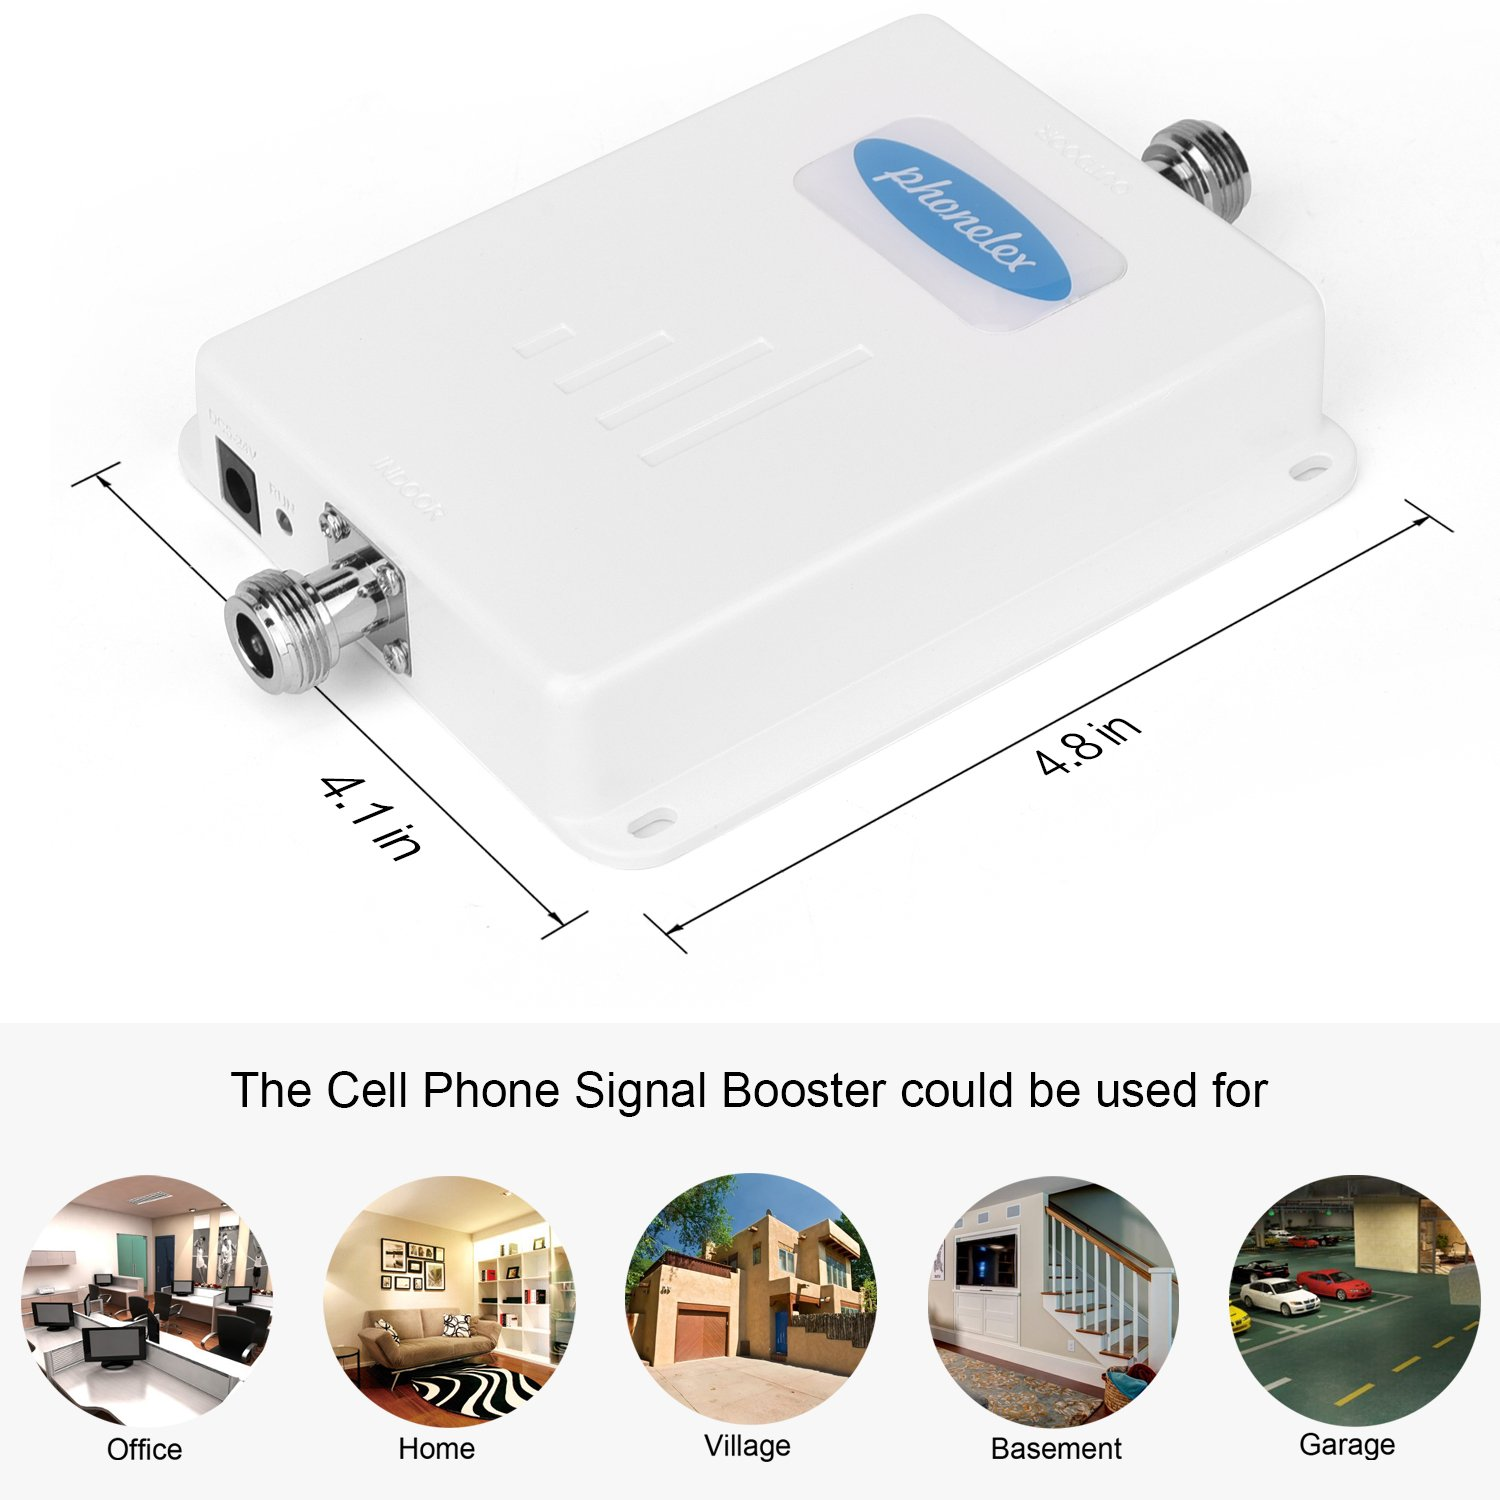 Phonelex Cell Phone Signal Booster AT&T T-Mobile 4G LTE Band12/17 700Mhz 70dB Cell Phone Signal Amplifier Mobile Signal Booster Repeater with Indoor Ceiling / Outdoor YaGi Directional Antenna For Home by phonelex (Image #3)